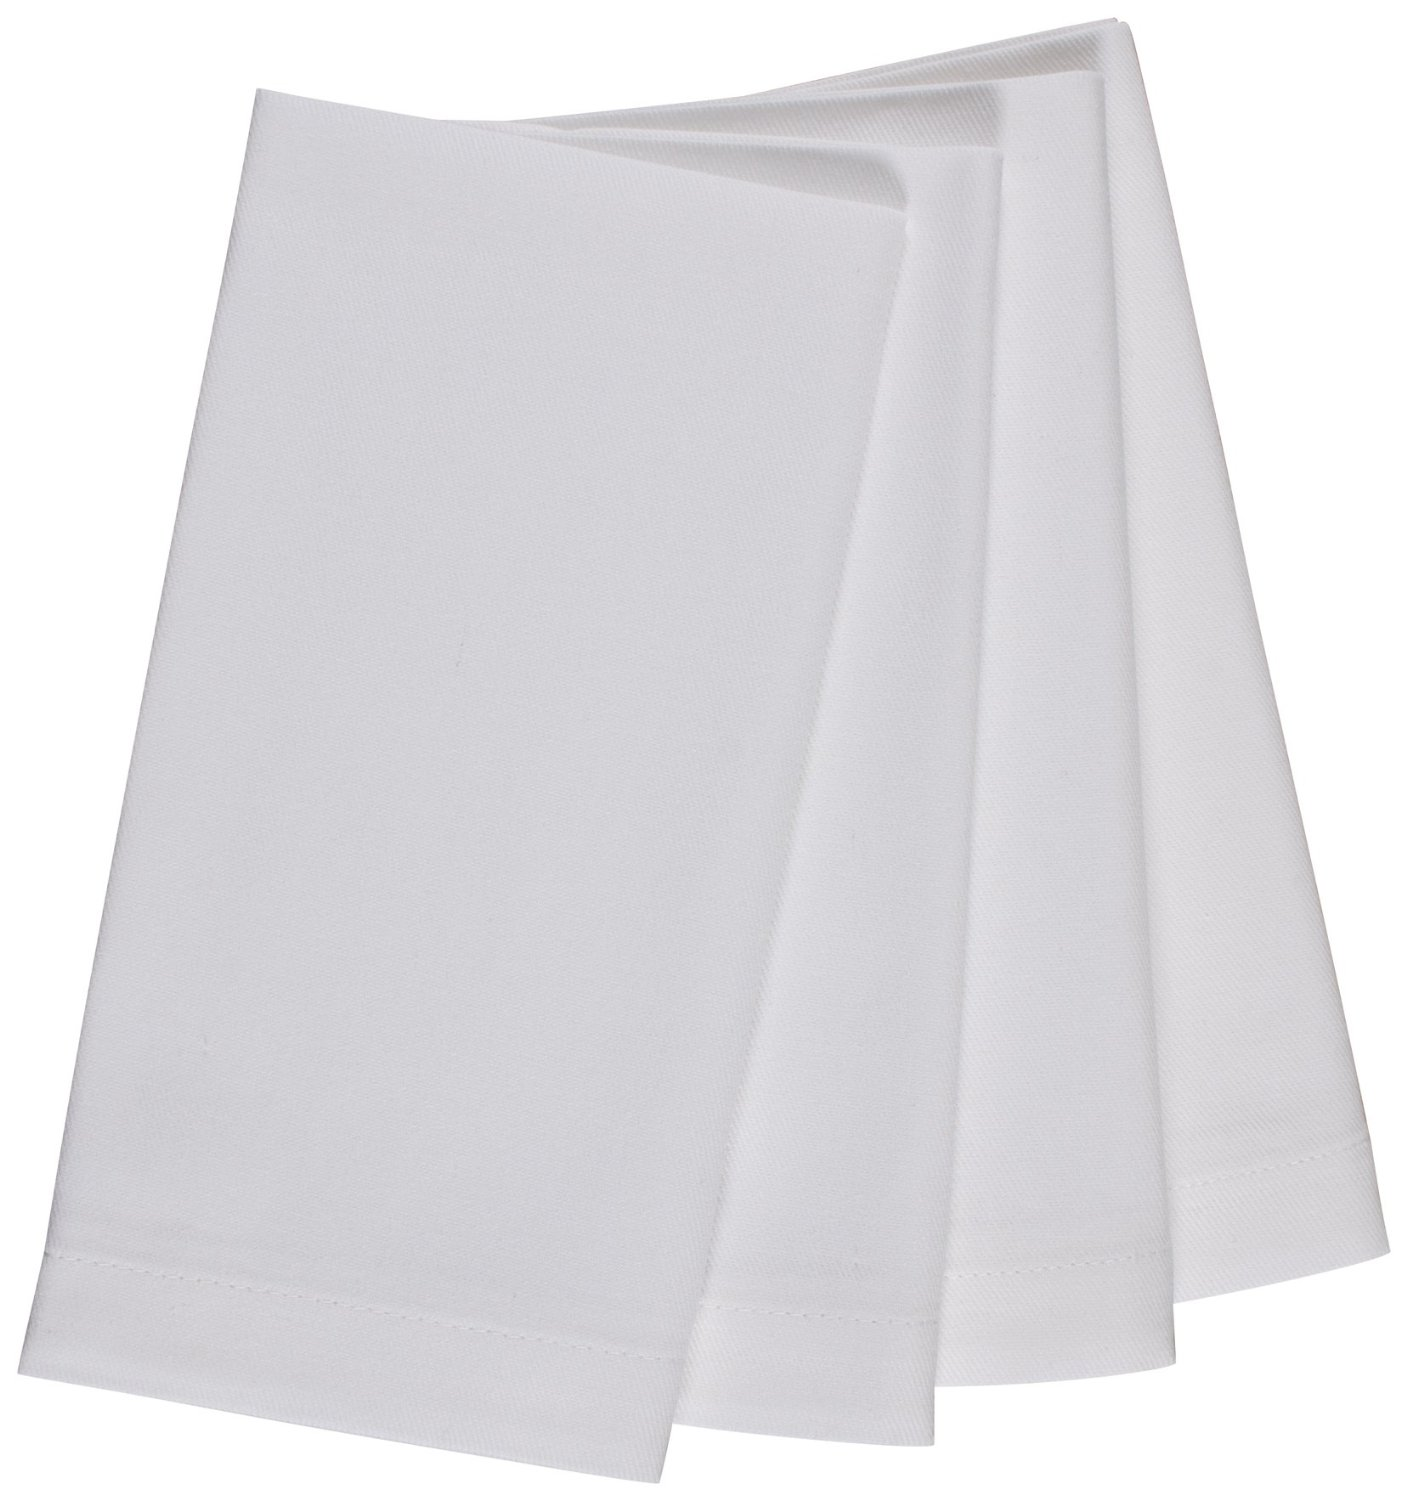 Napkin clipart white linen. Cloth napkins the catering